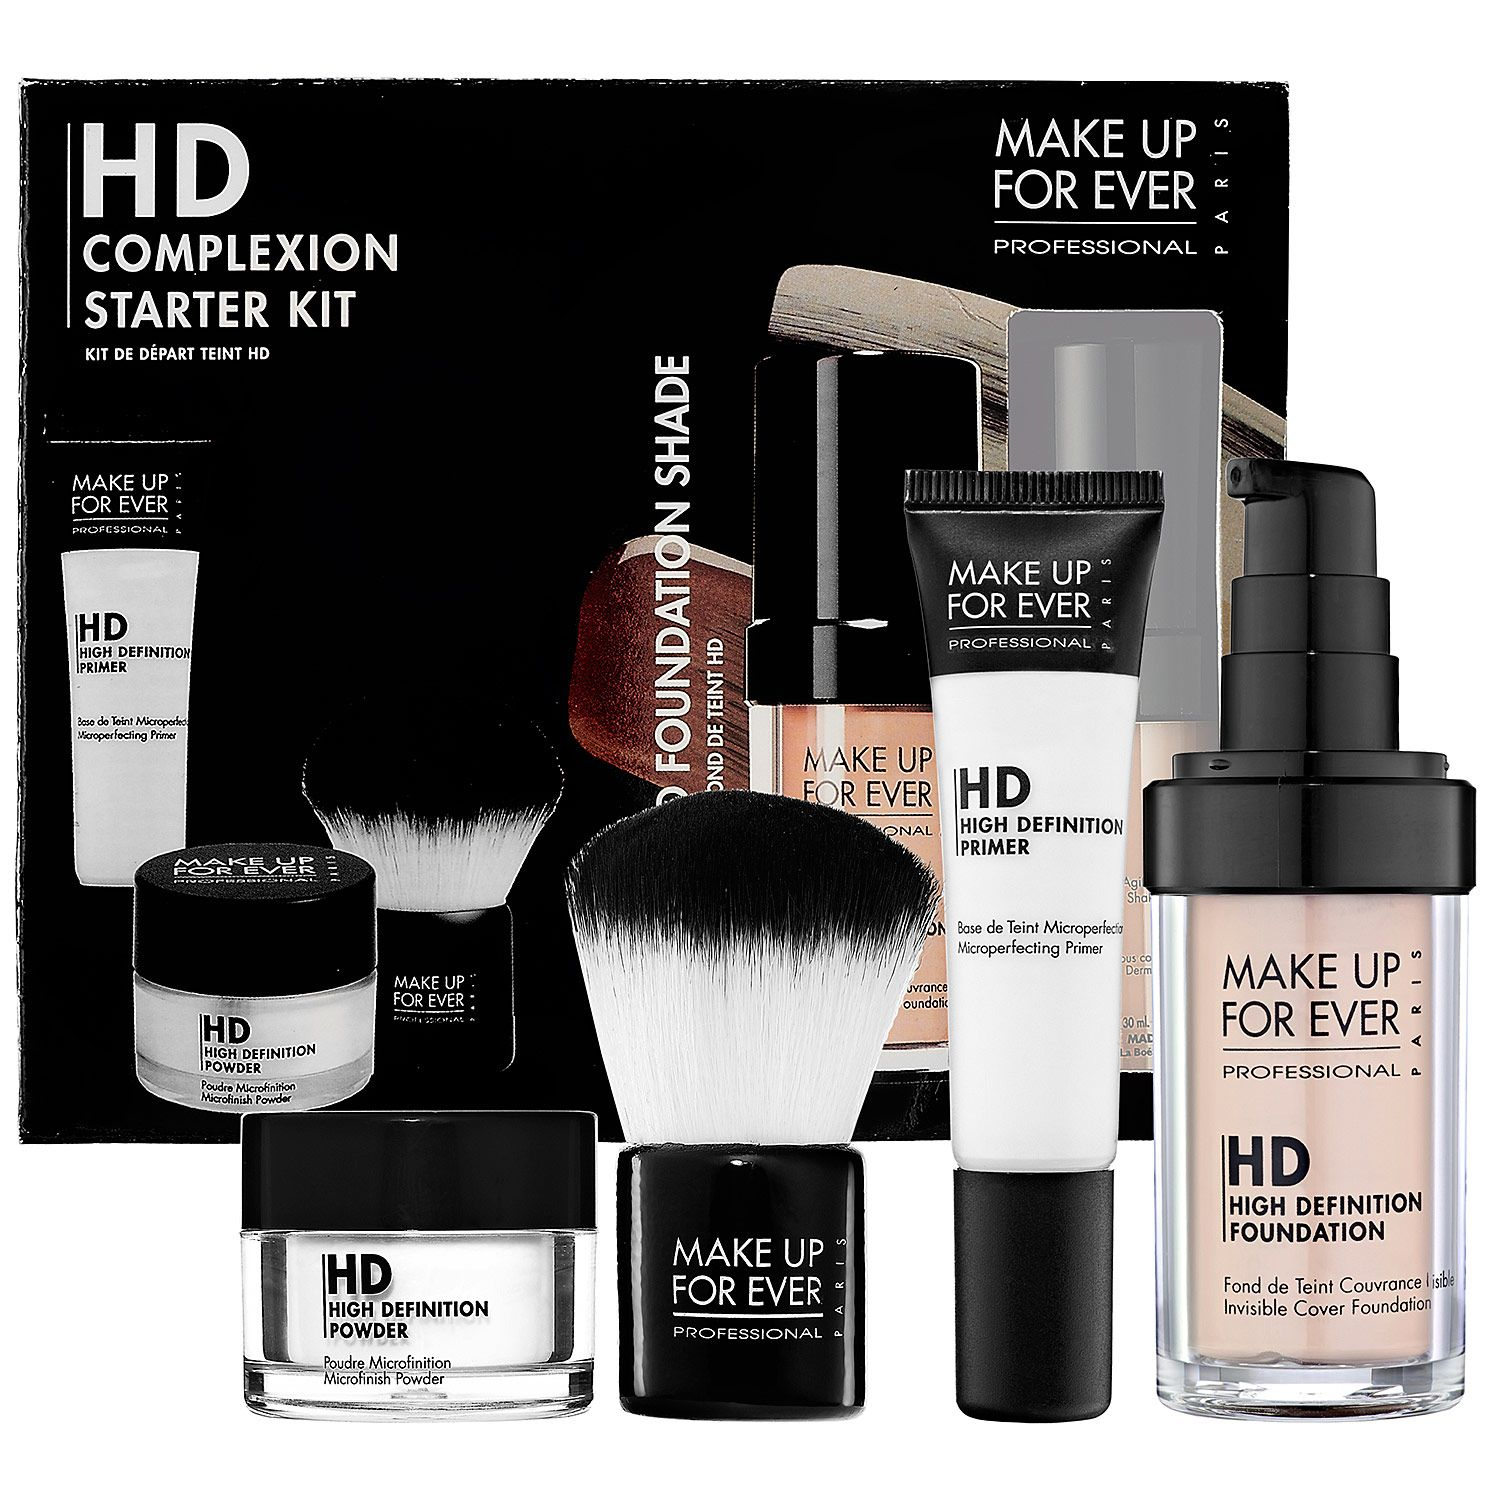 MAKE UP FOR EVER HD Complexion Starter Kit #Sephora #Makeup ...